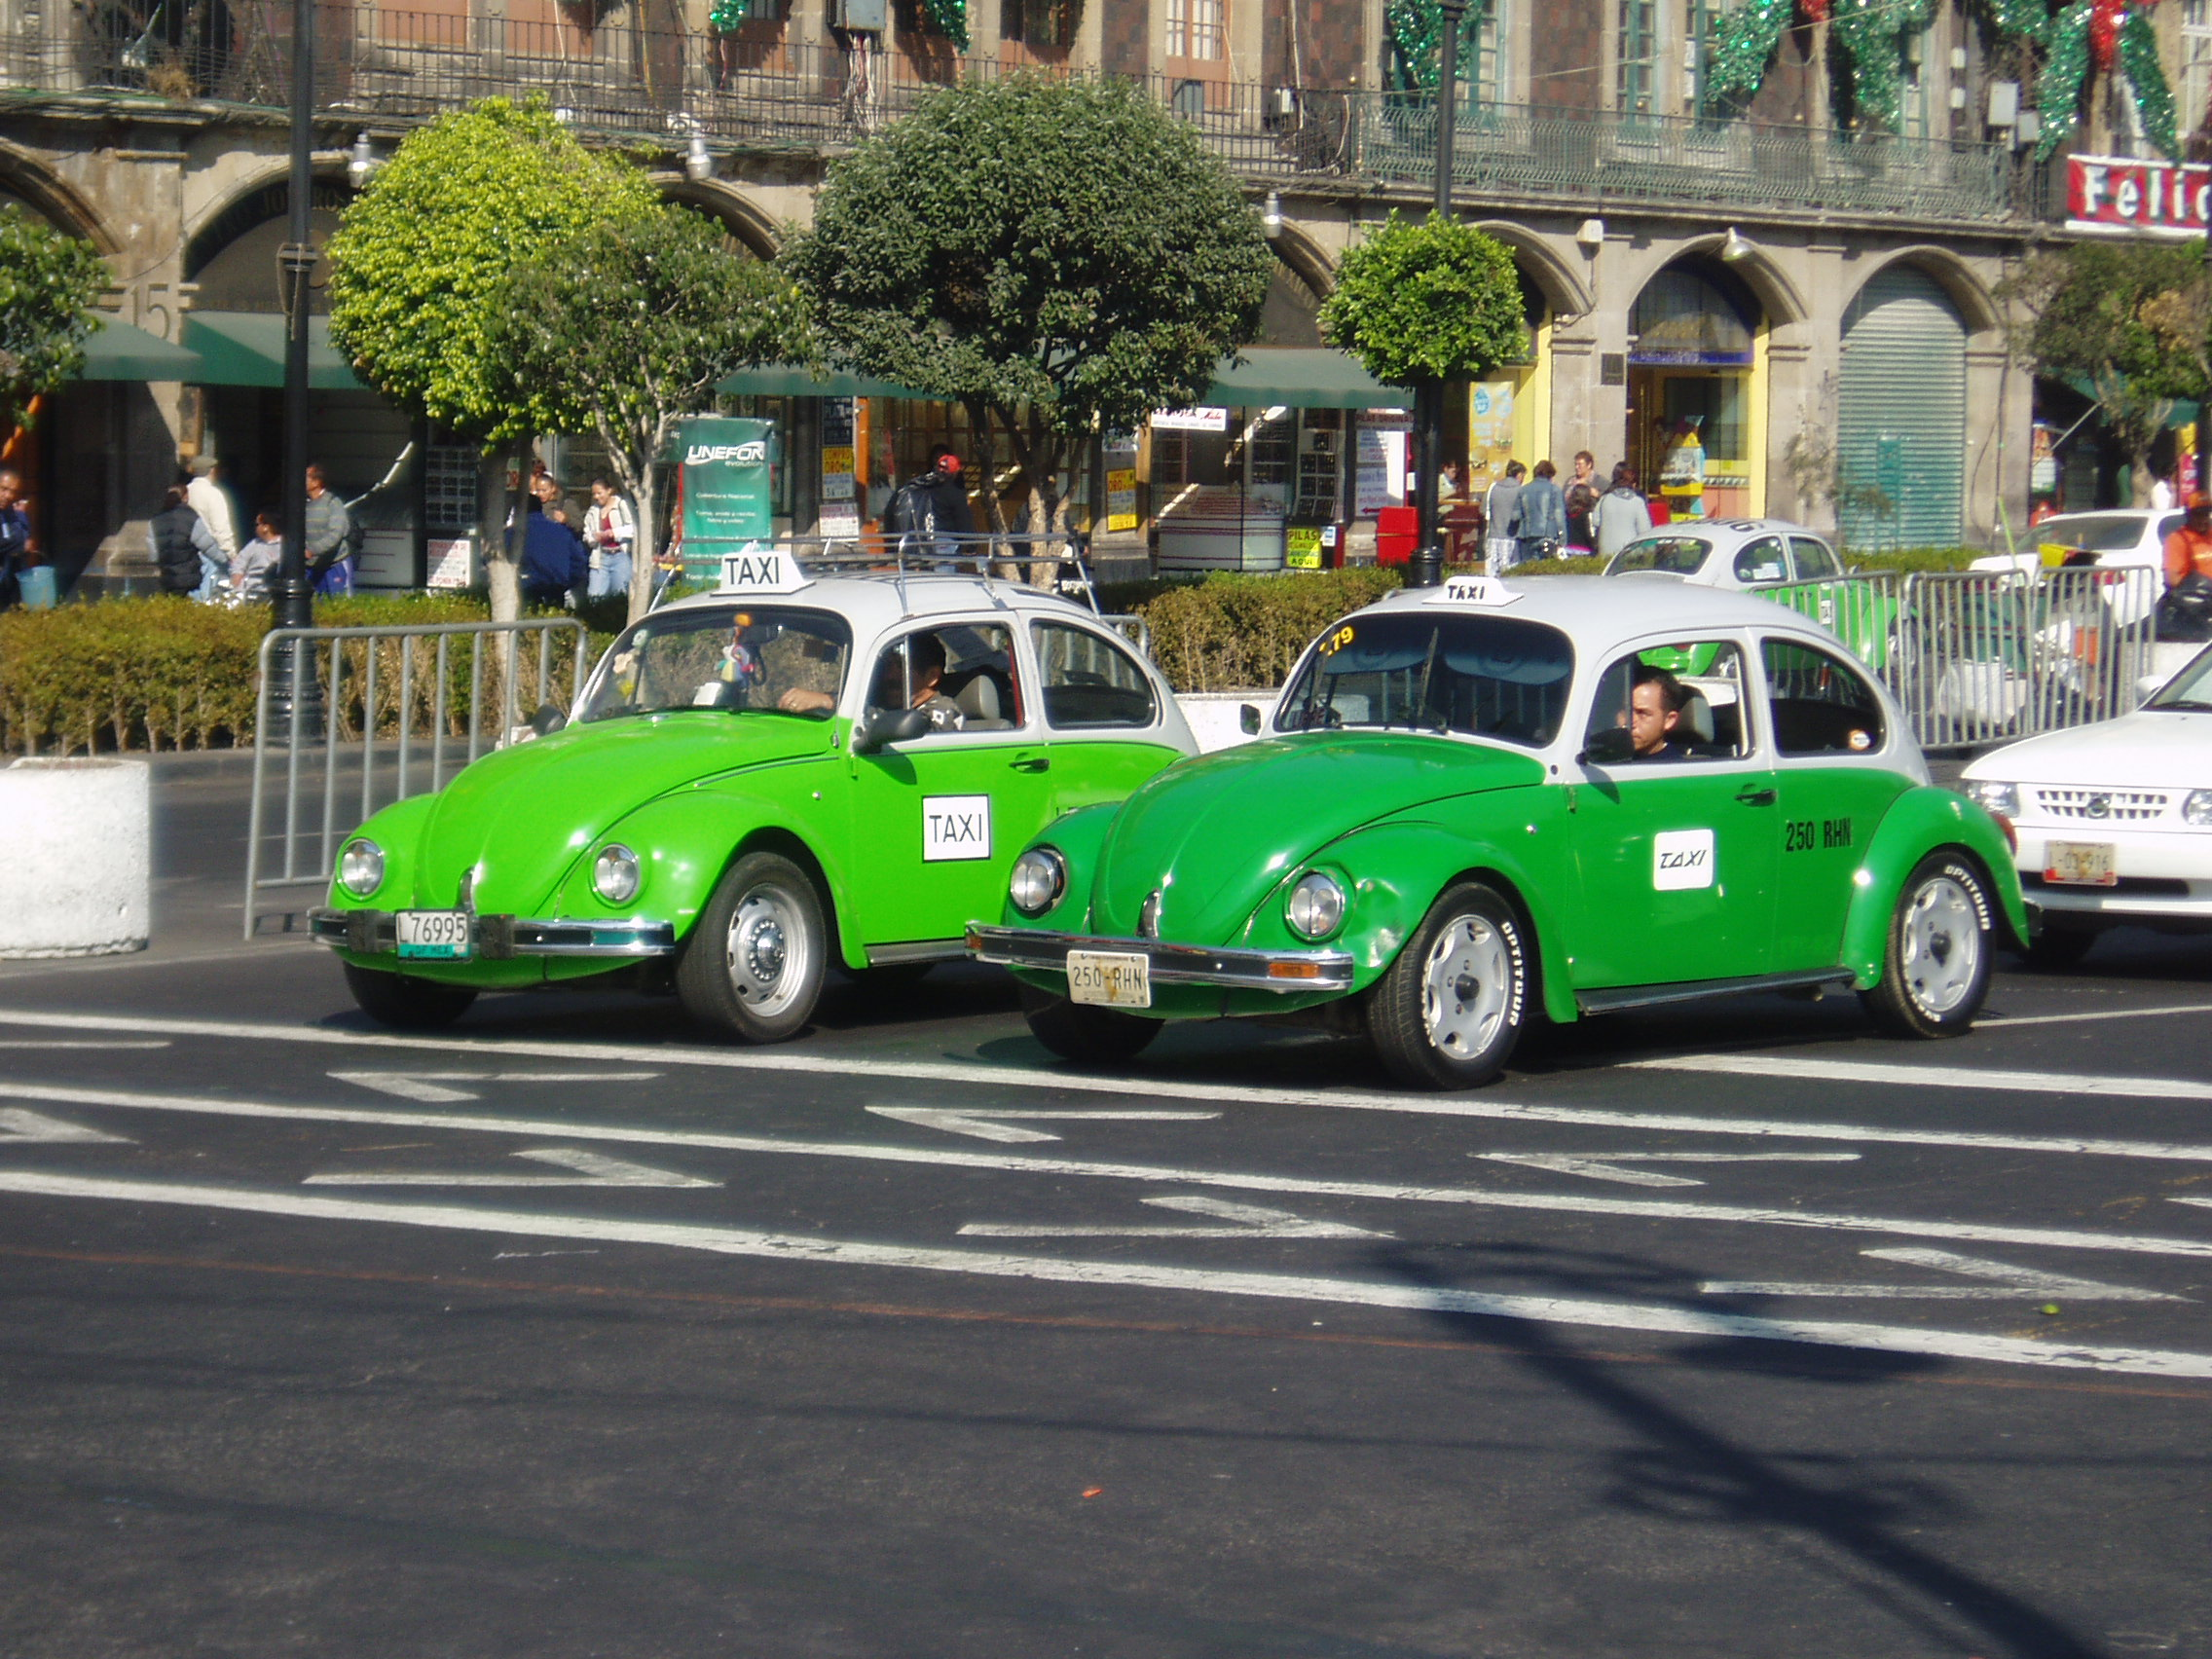 Taxis in Mexico City | Flickr - Photo Sharing!